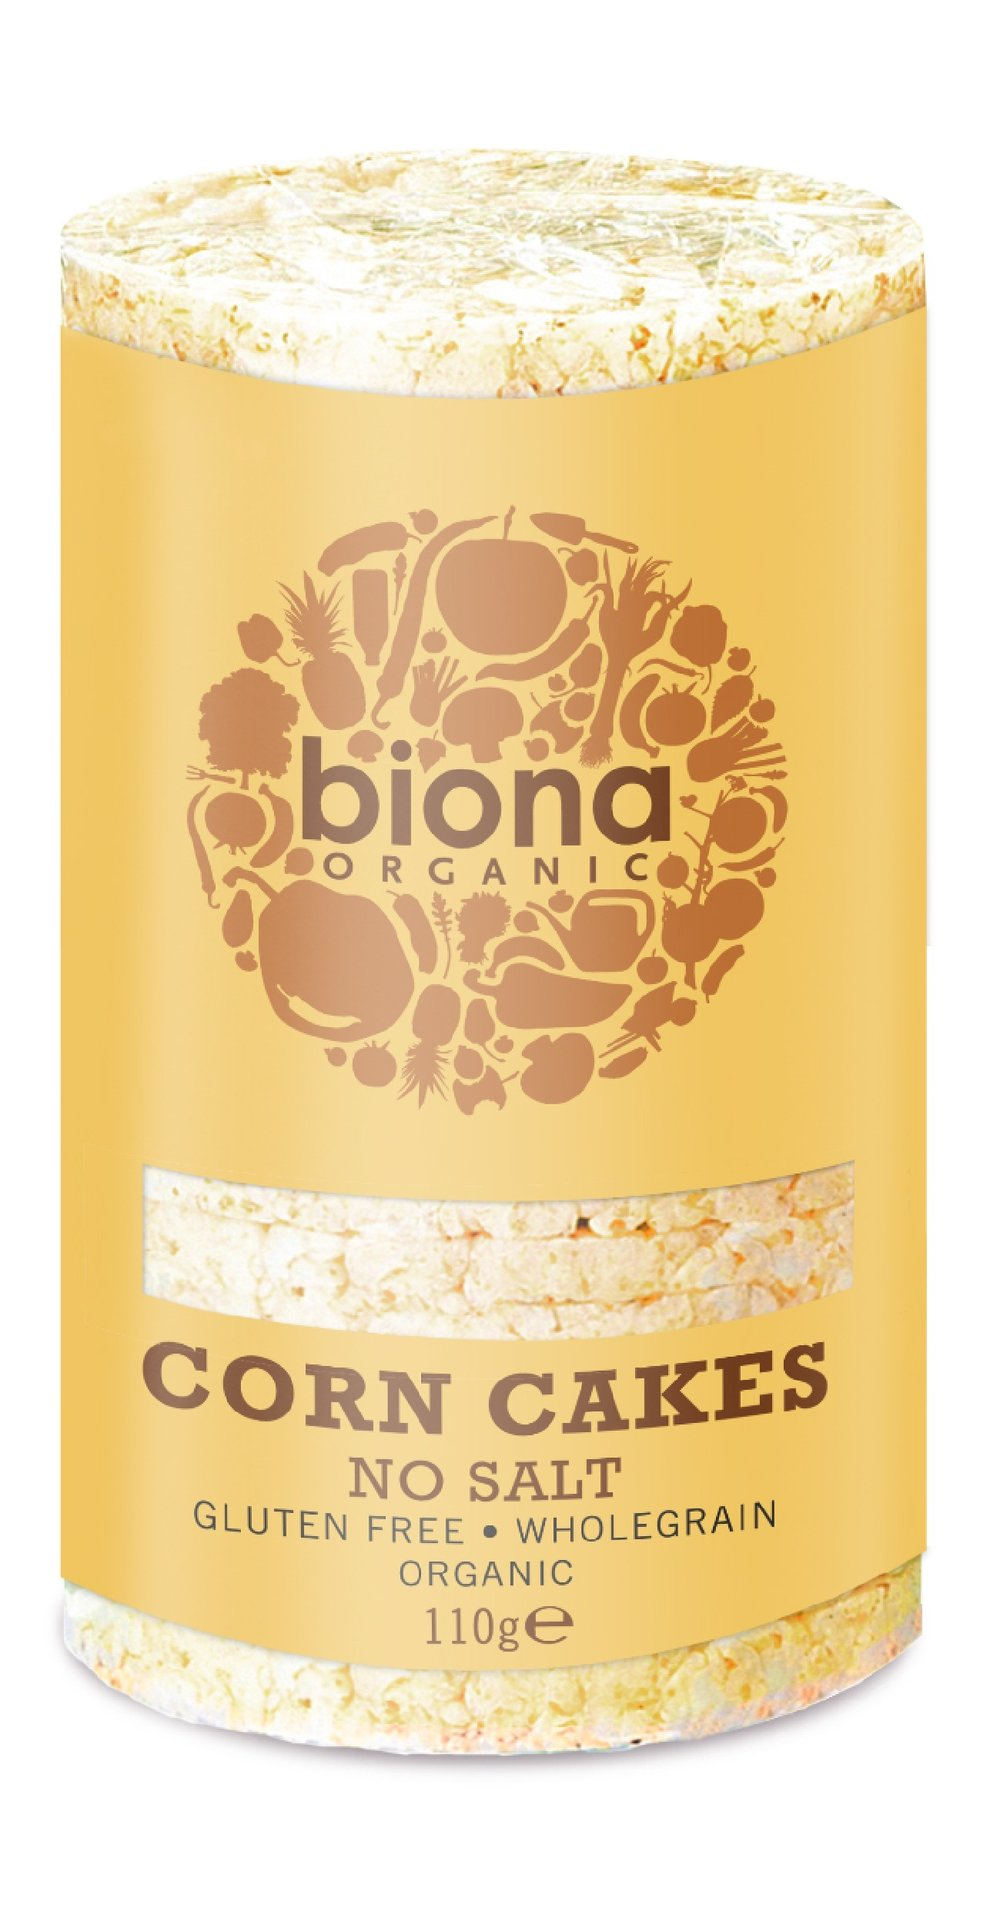 Biona_Corn Cakes_no salt.JPG